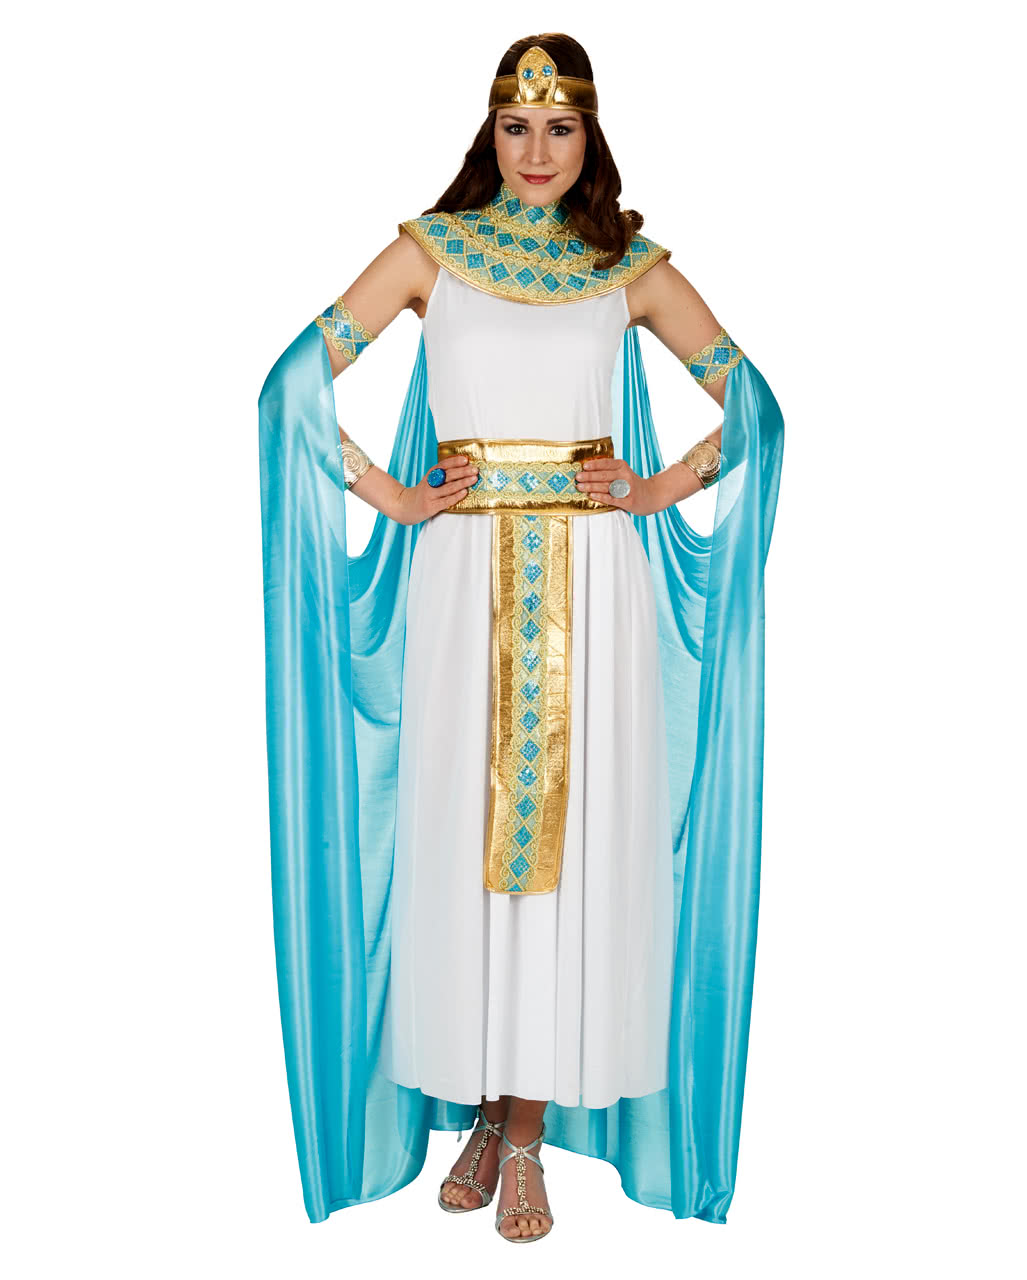 Cleopatra Costume With Cape As carnival costume | horror-shop.com